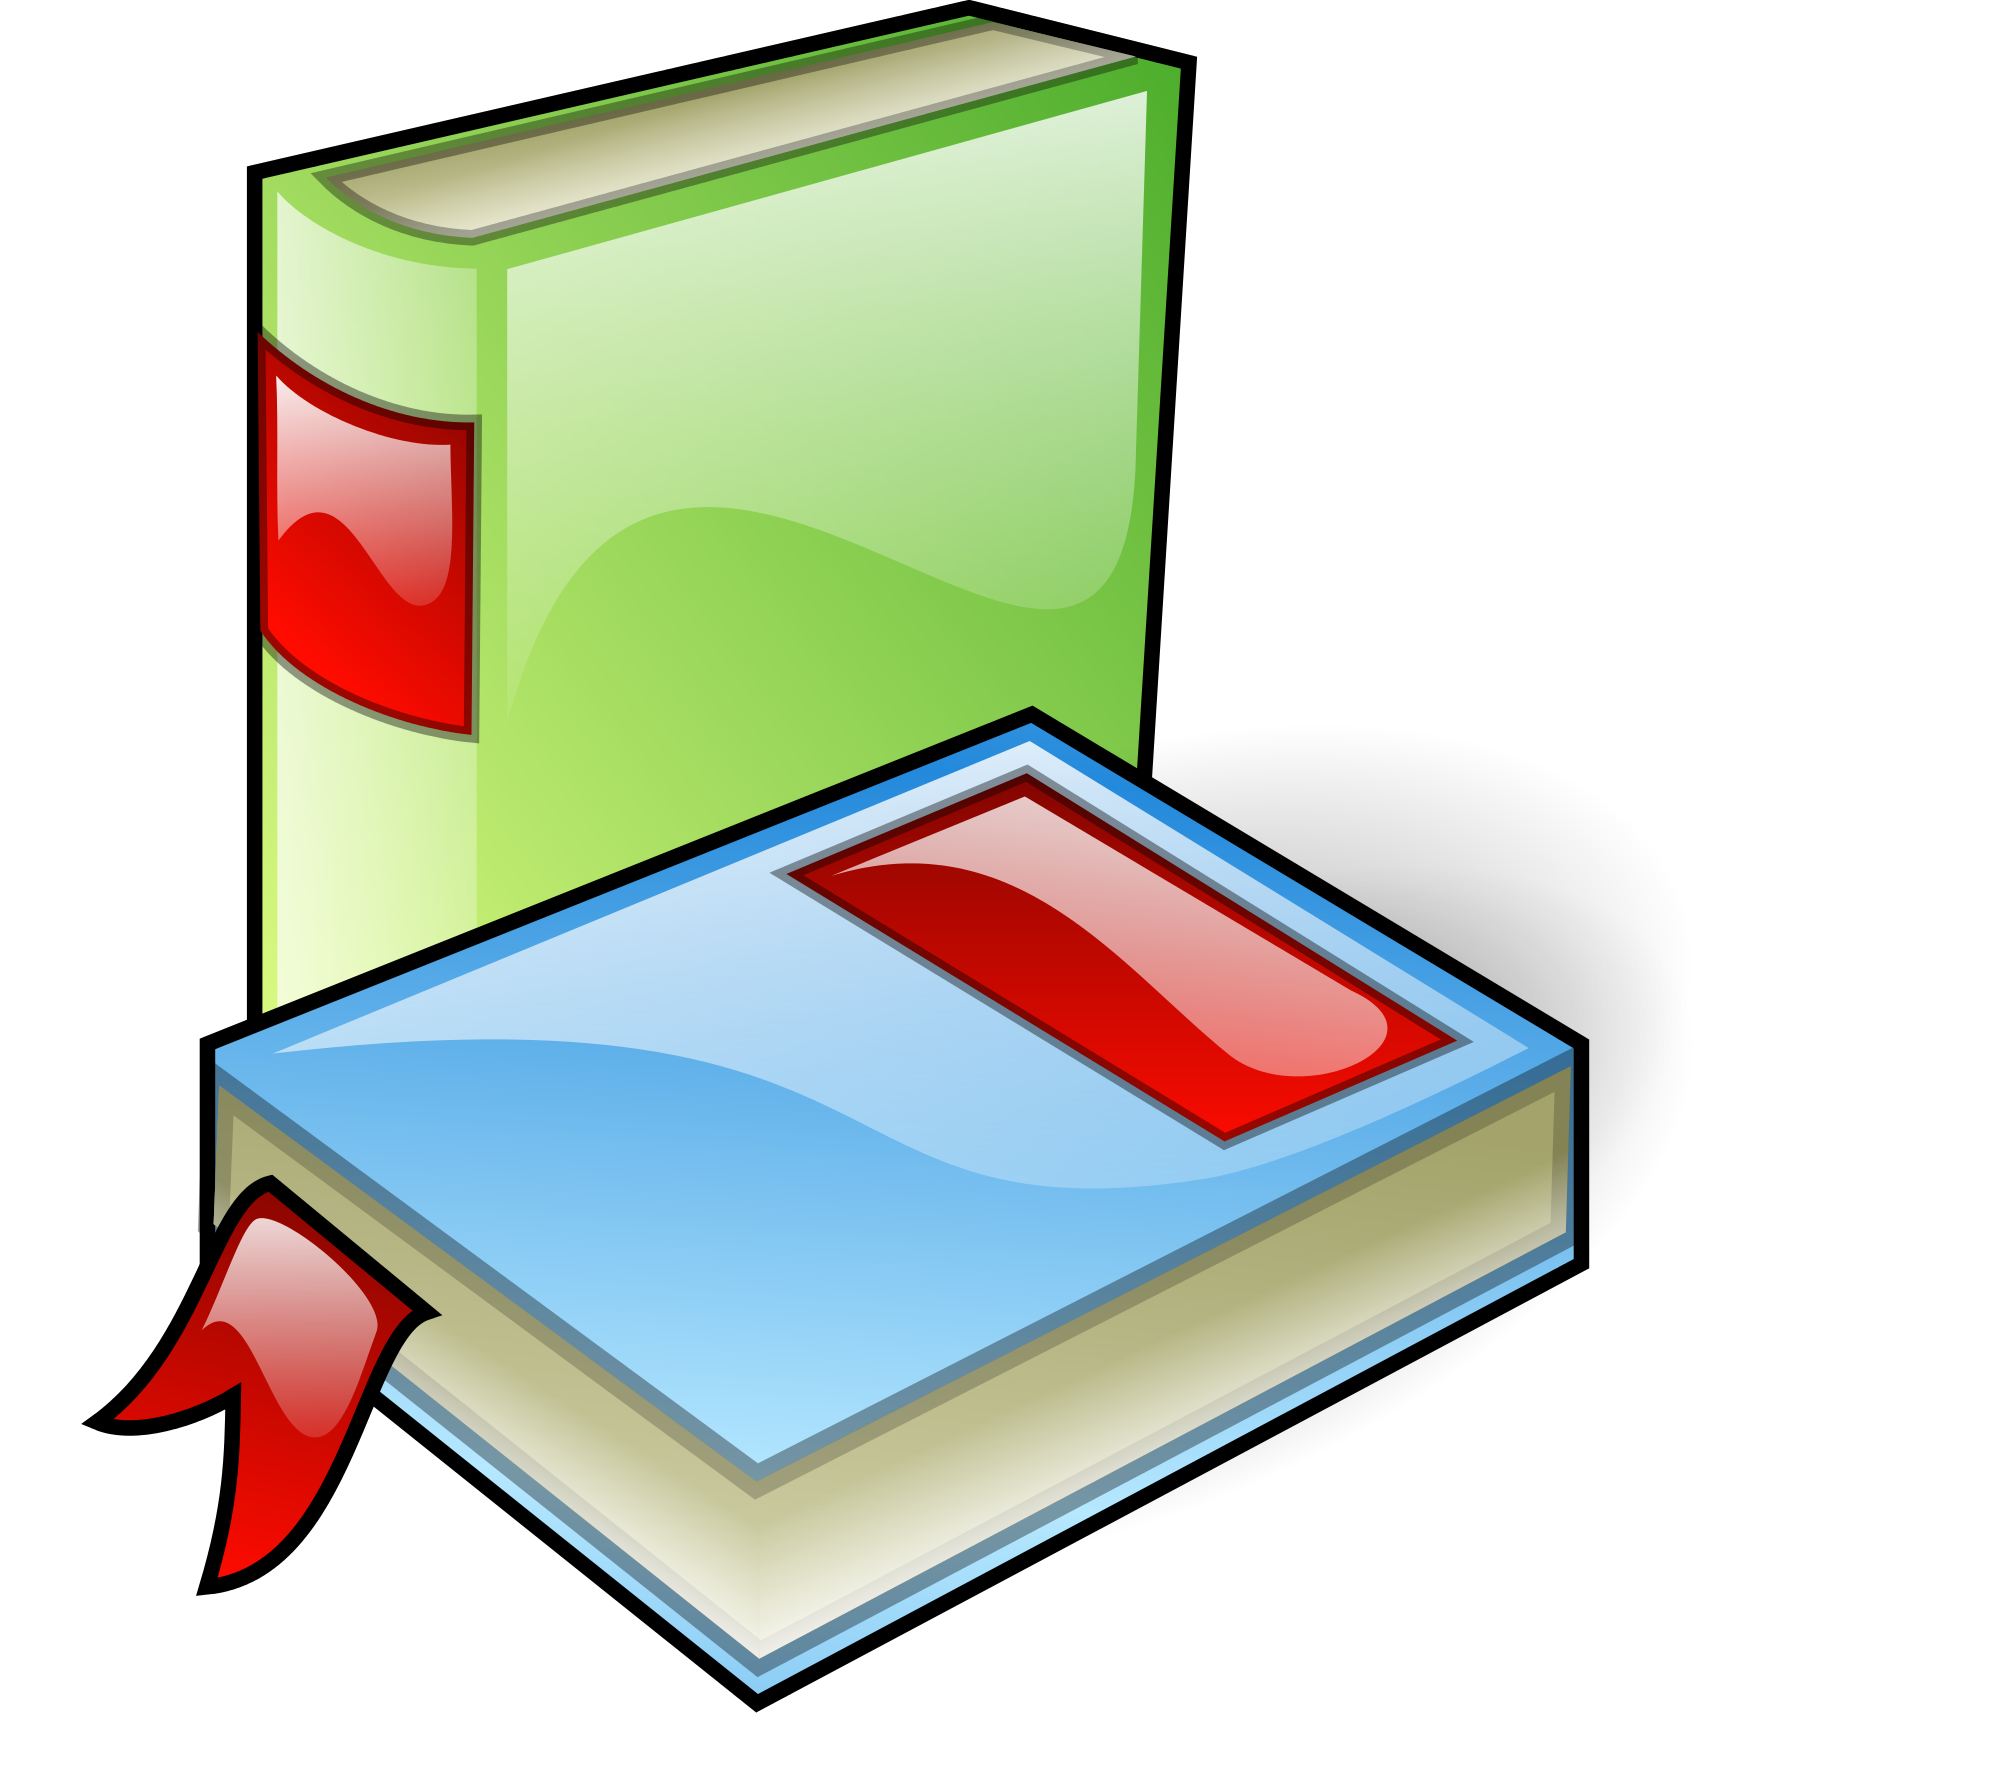 Book icon clipart image library library File:Books-aj.svg aj ashton 01.svg - Wikimedia Commons image library library